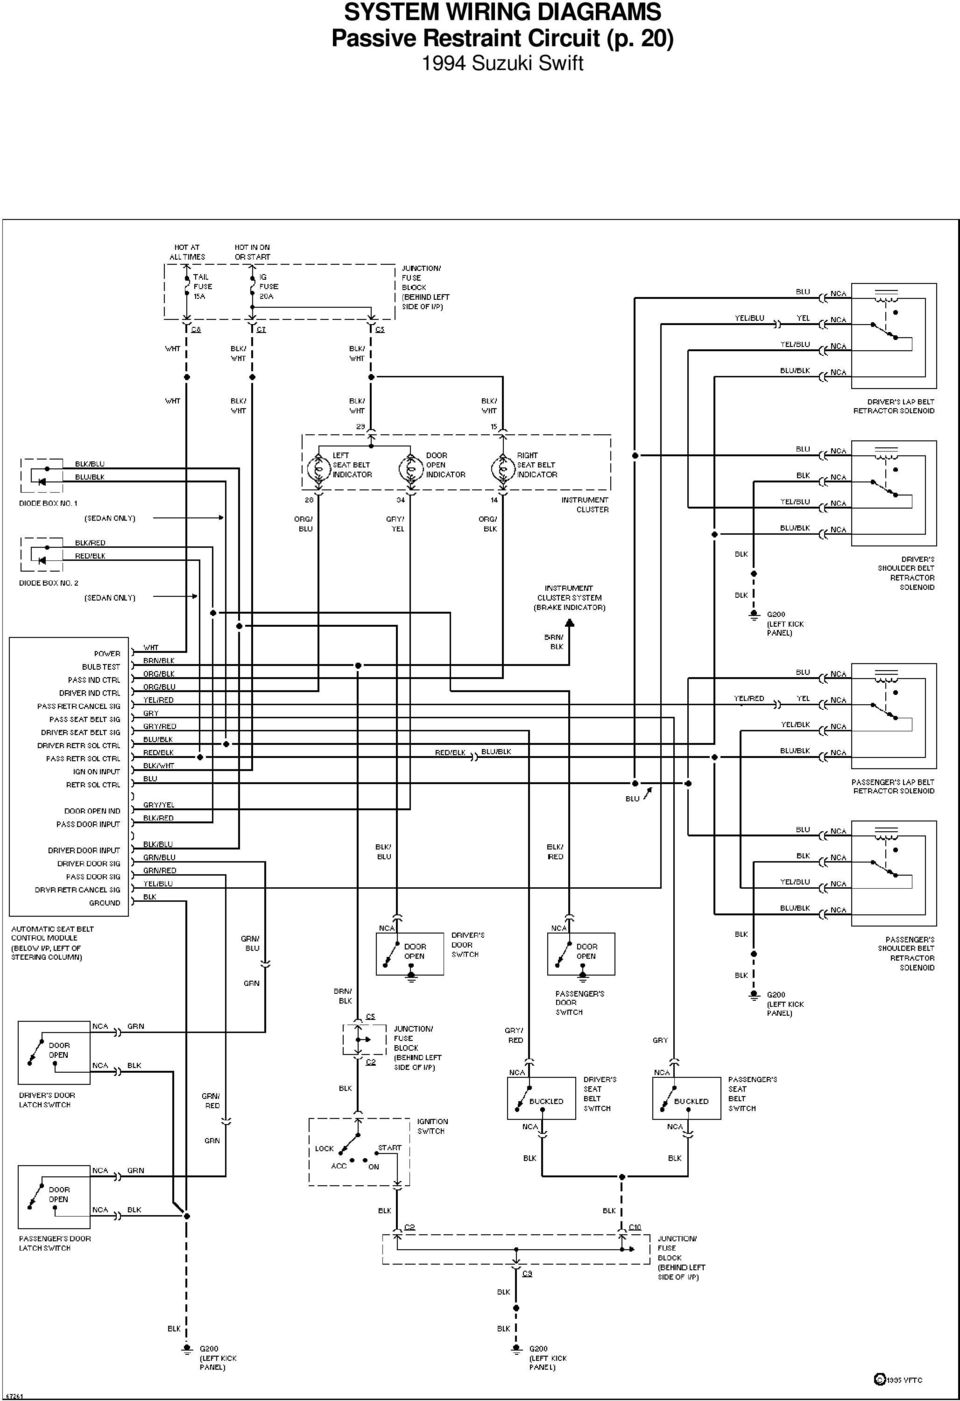 SYSTEM WIRING DIAGRAMS A/C Circuit 1994 Suzuki Swift For x